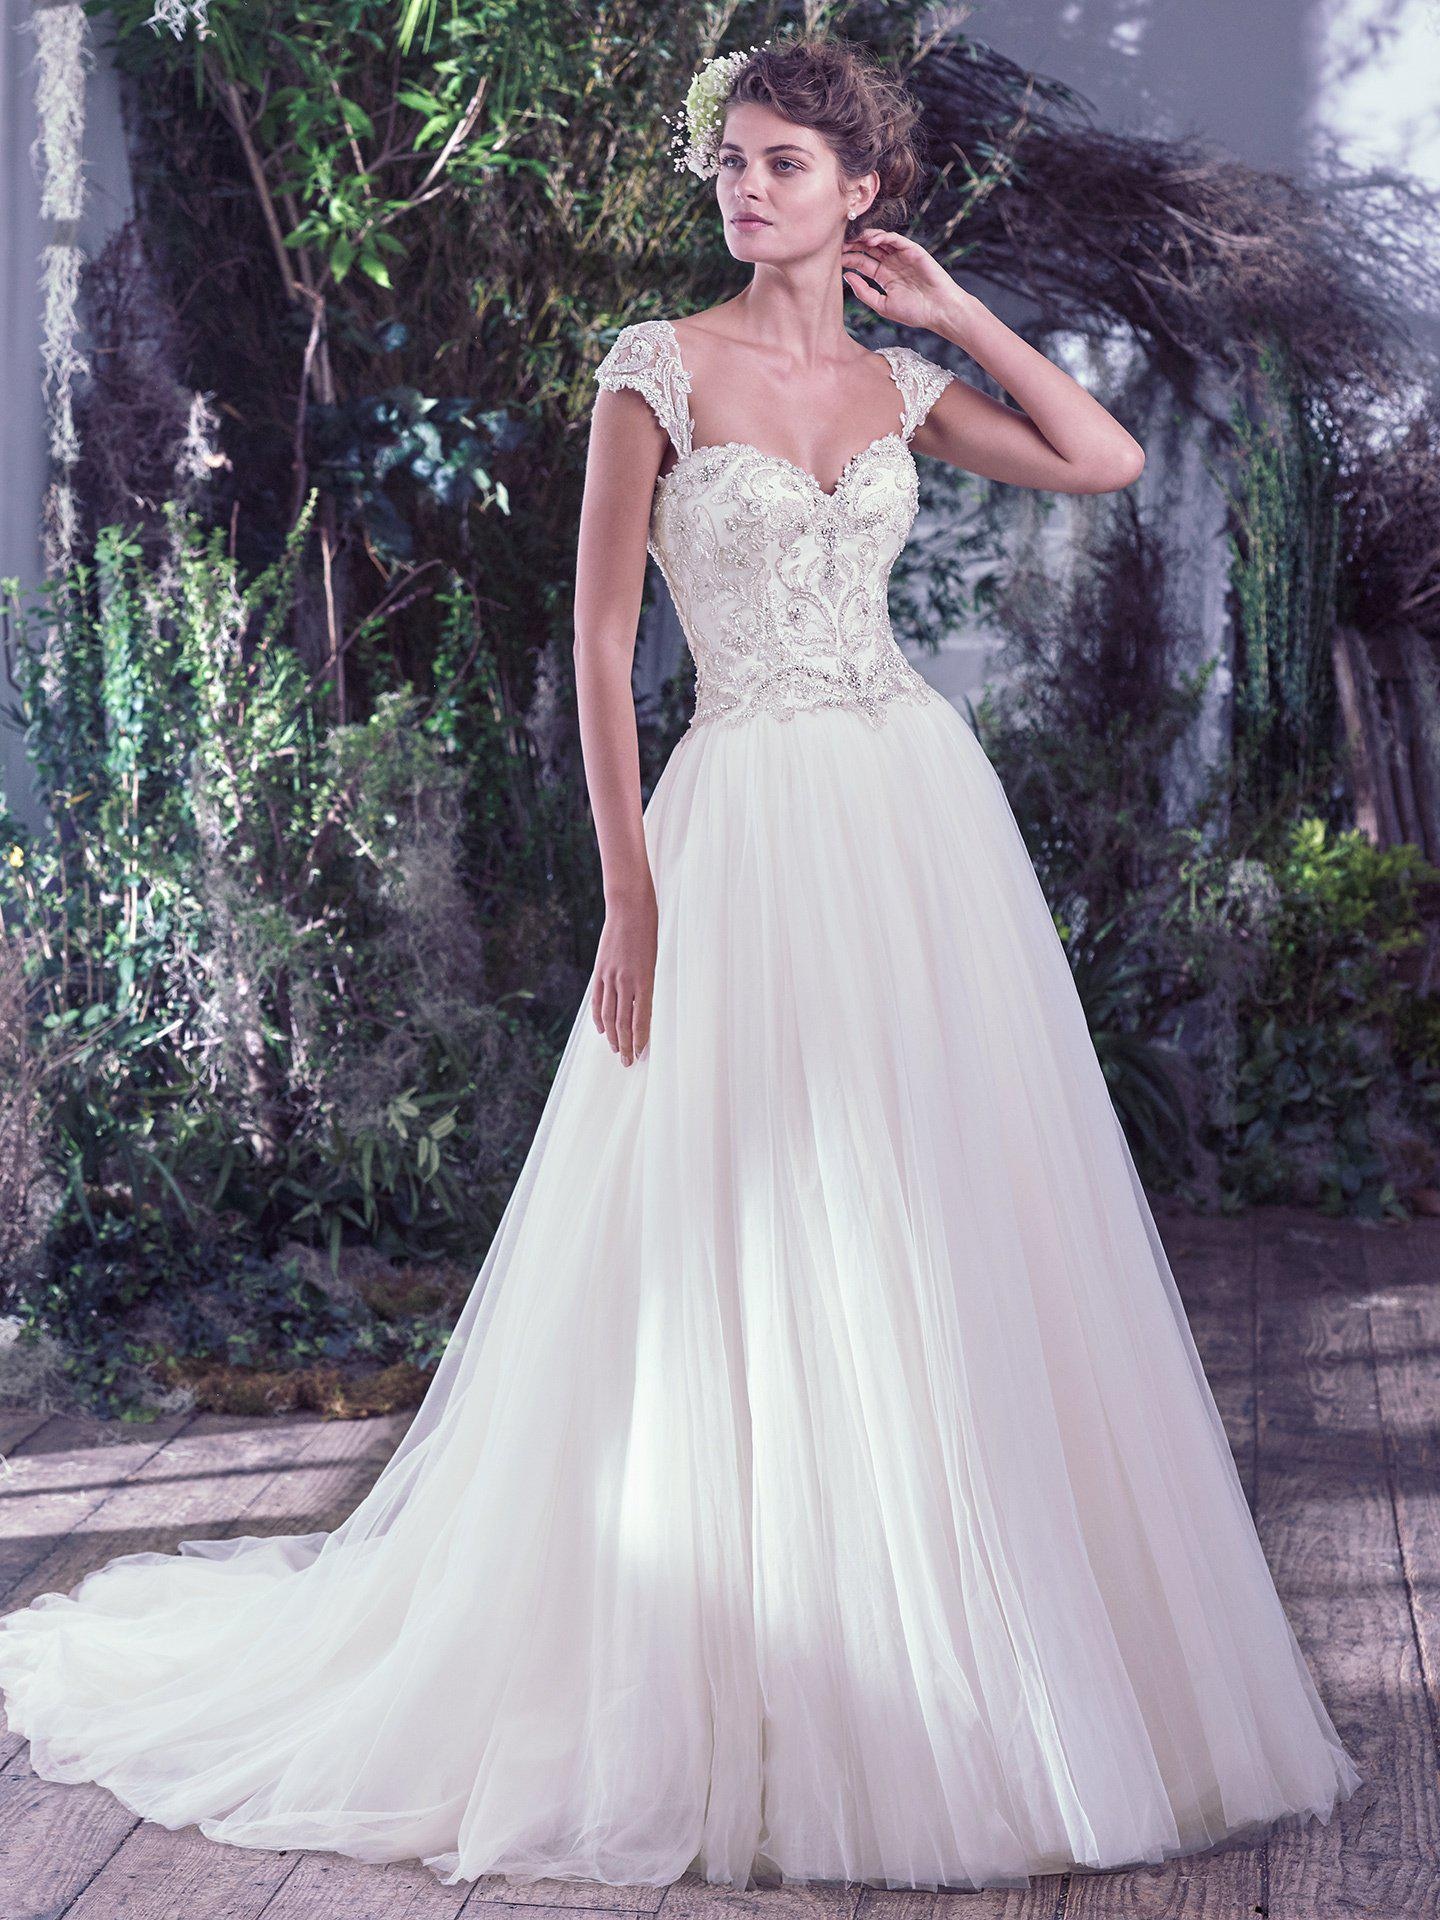 Maggie Sottero - BEVERLY, White: 36